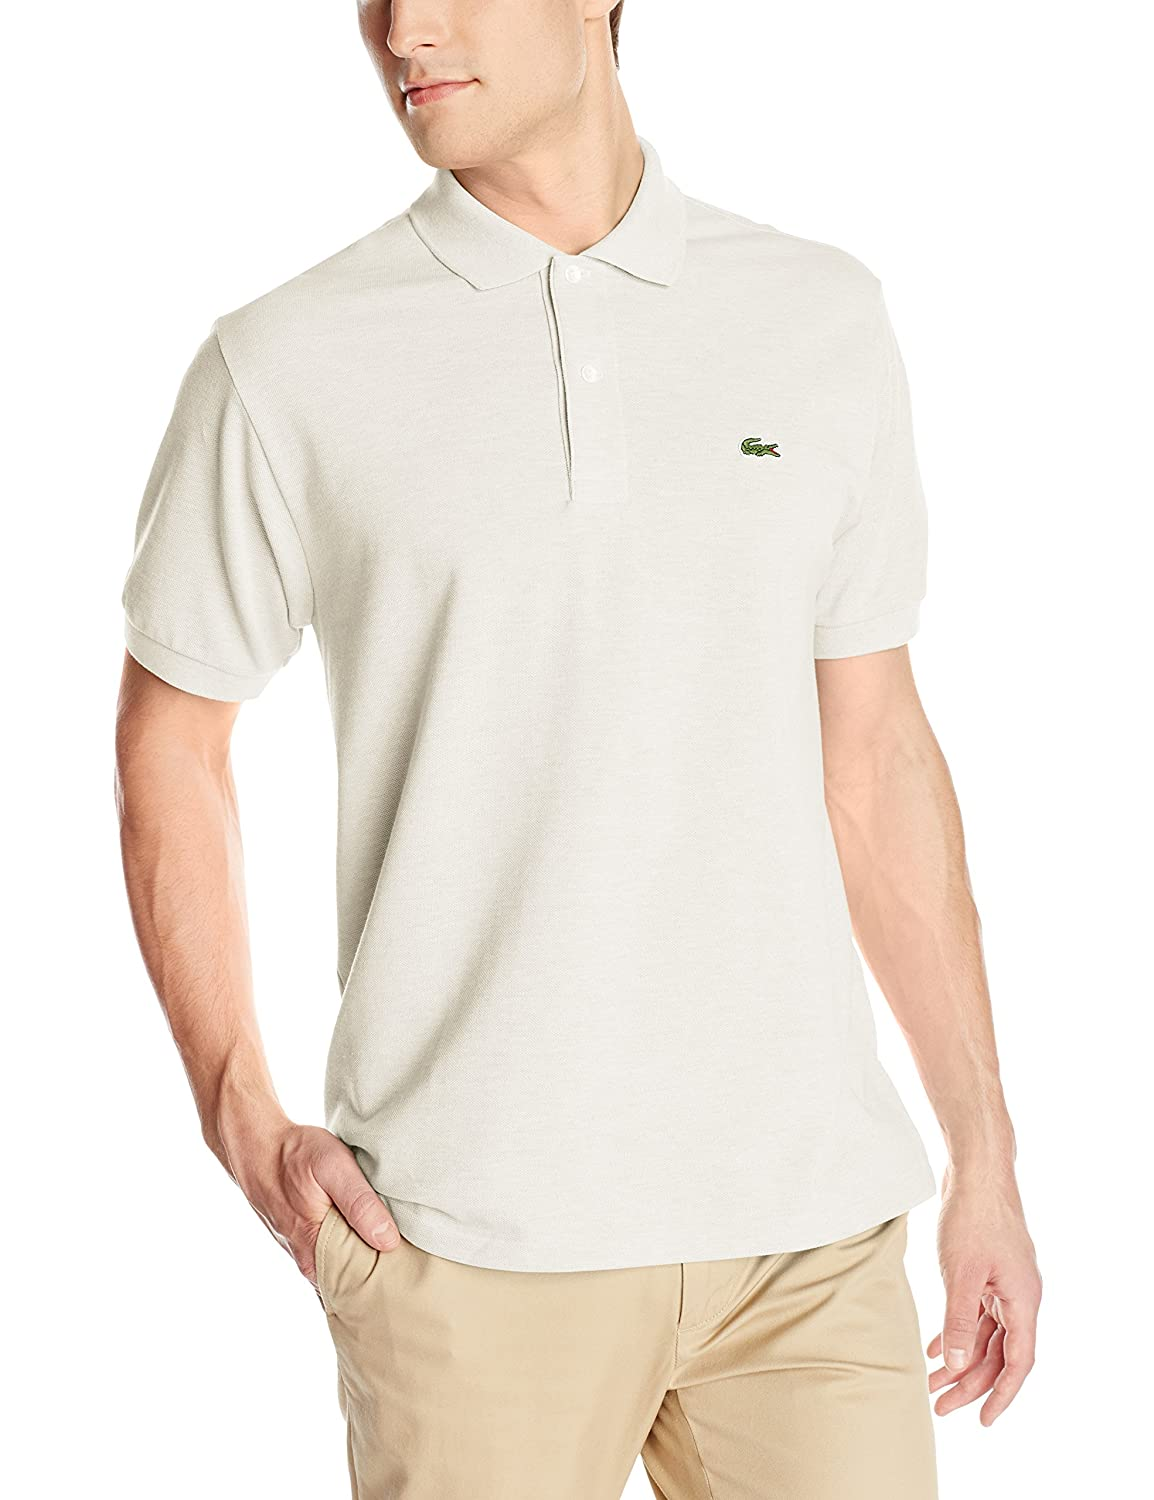 Fit Lacoste Pique Sleeve Men's Short PoloAlpes Classic Chine Grey UVzMqSp